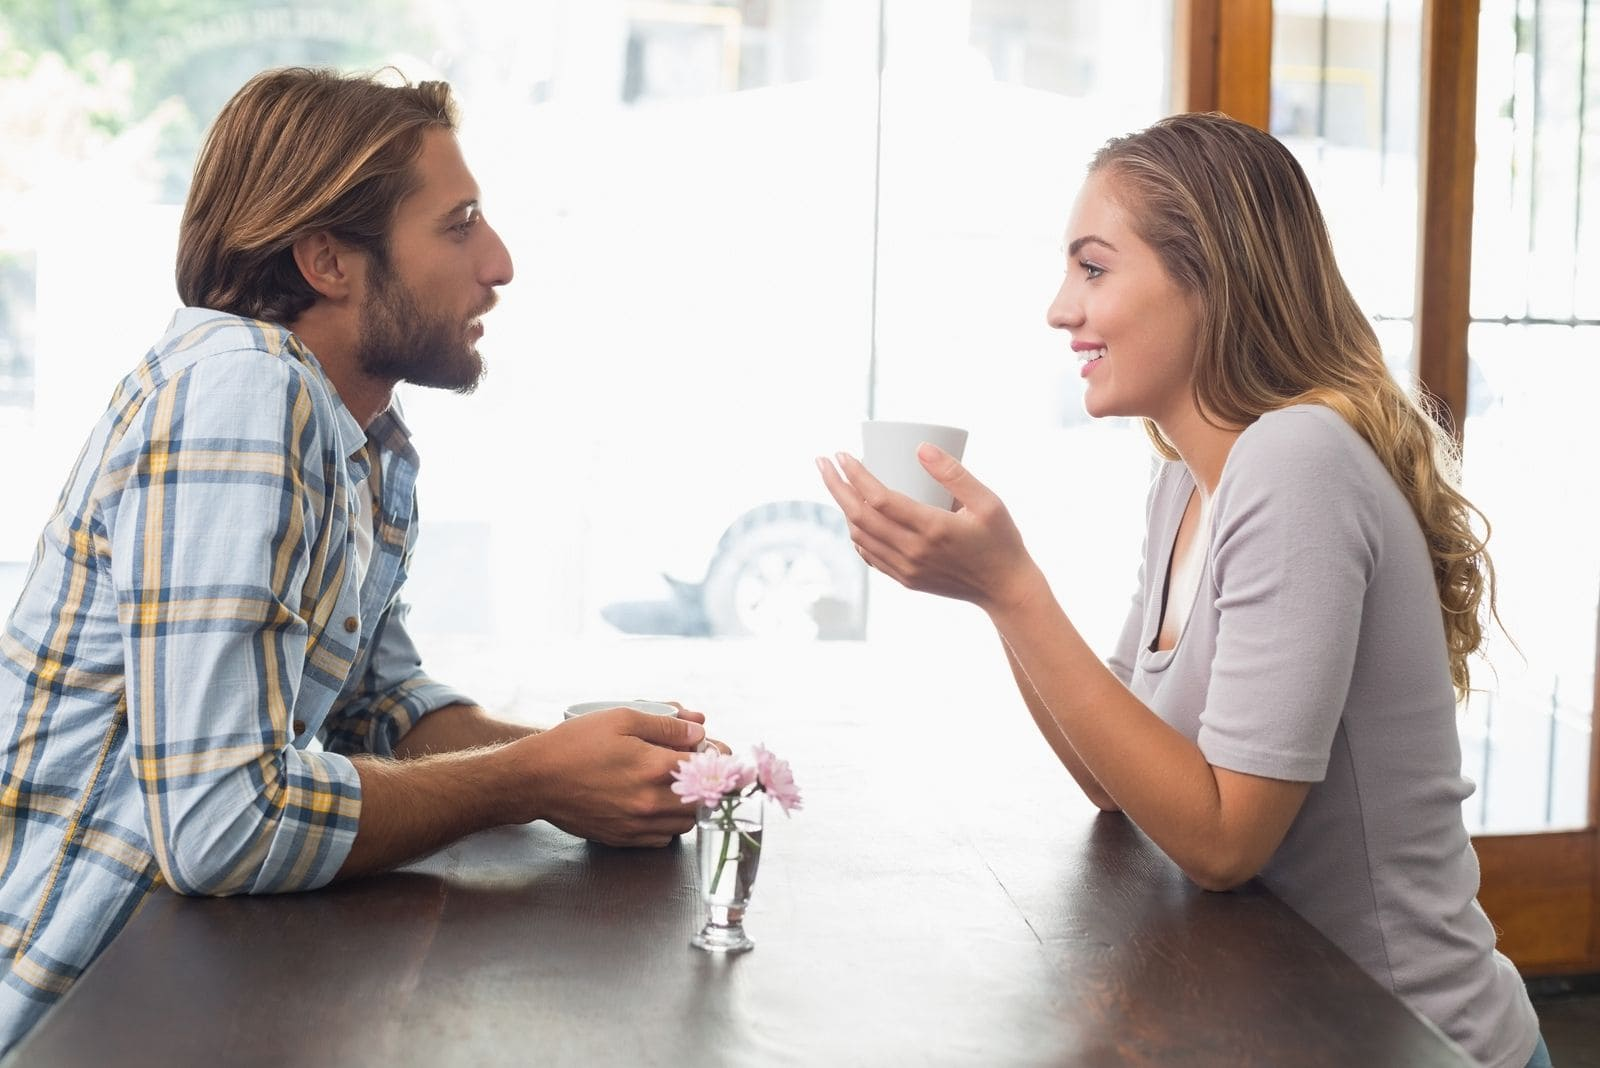 couple sitting face to face inside the cafe talking and smiling